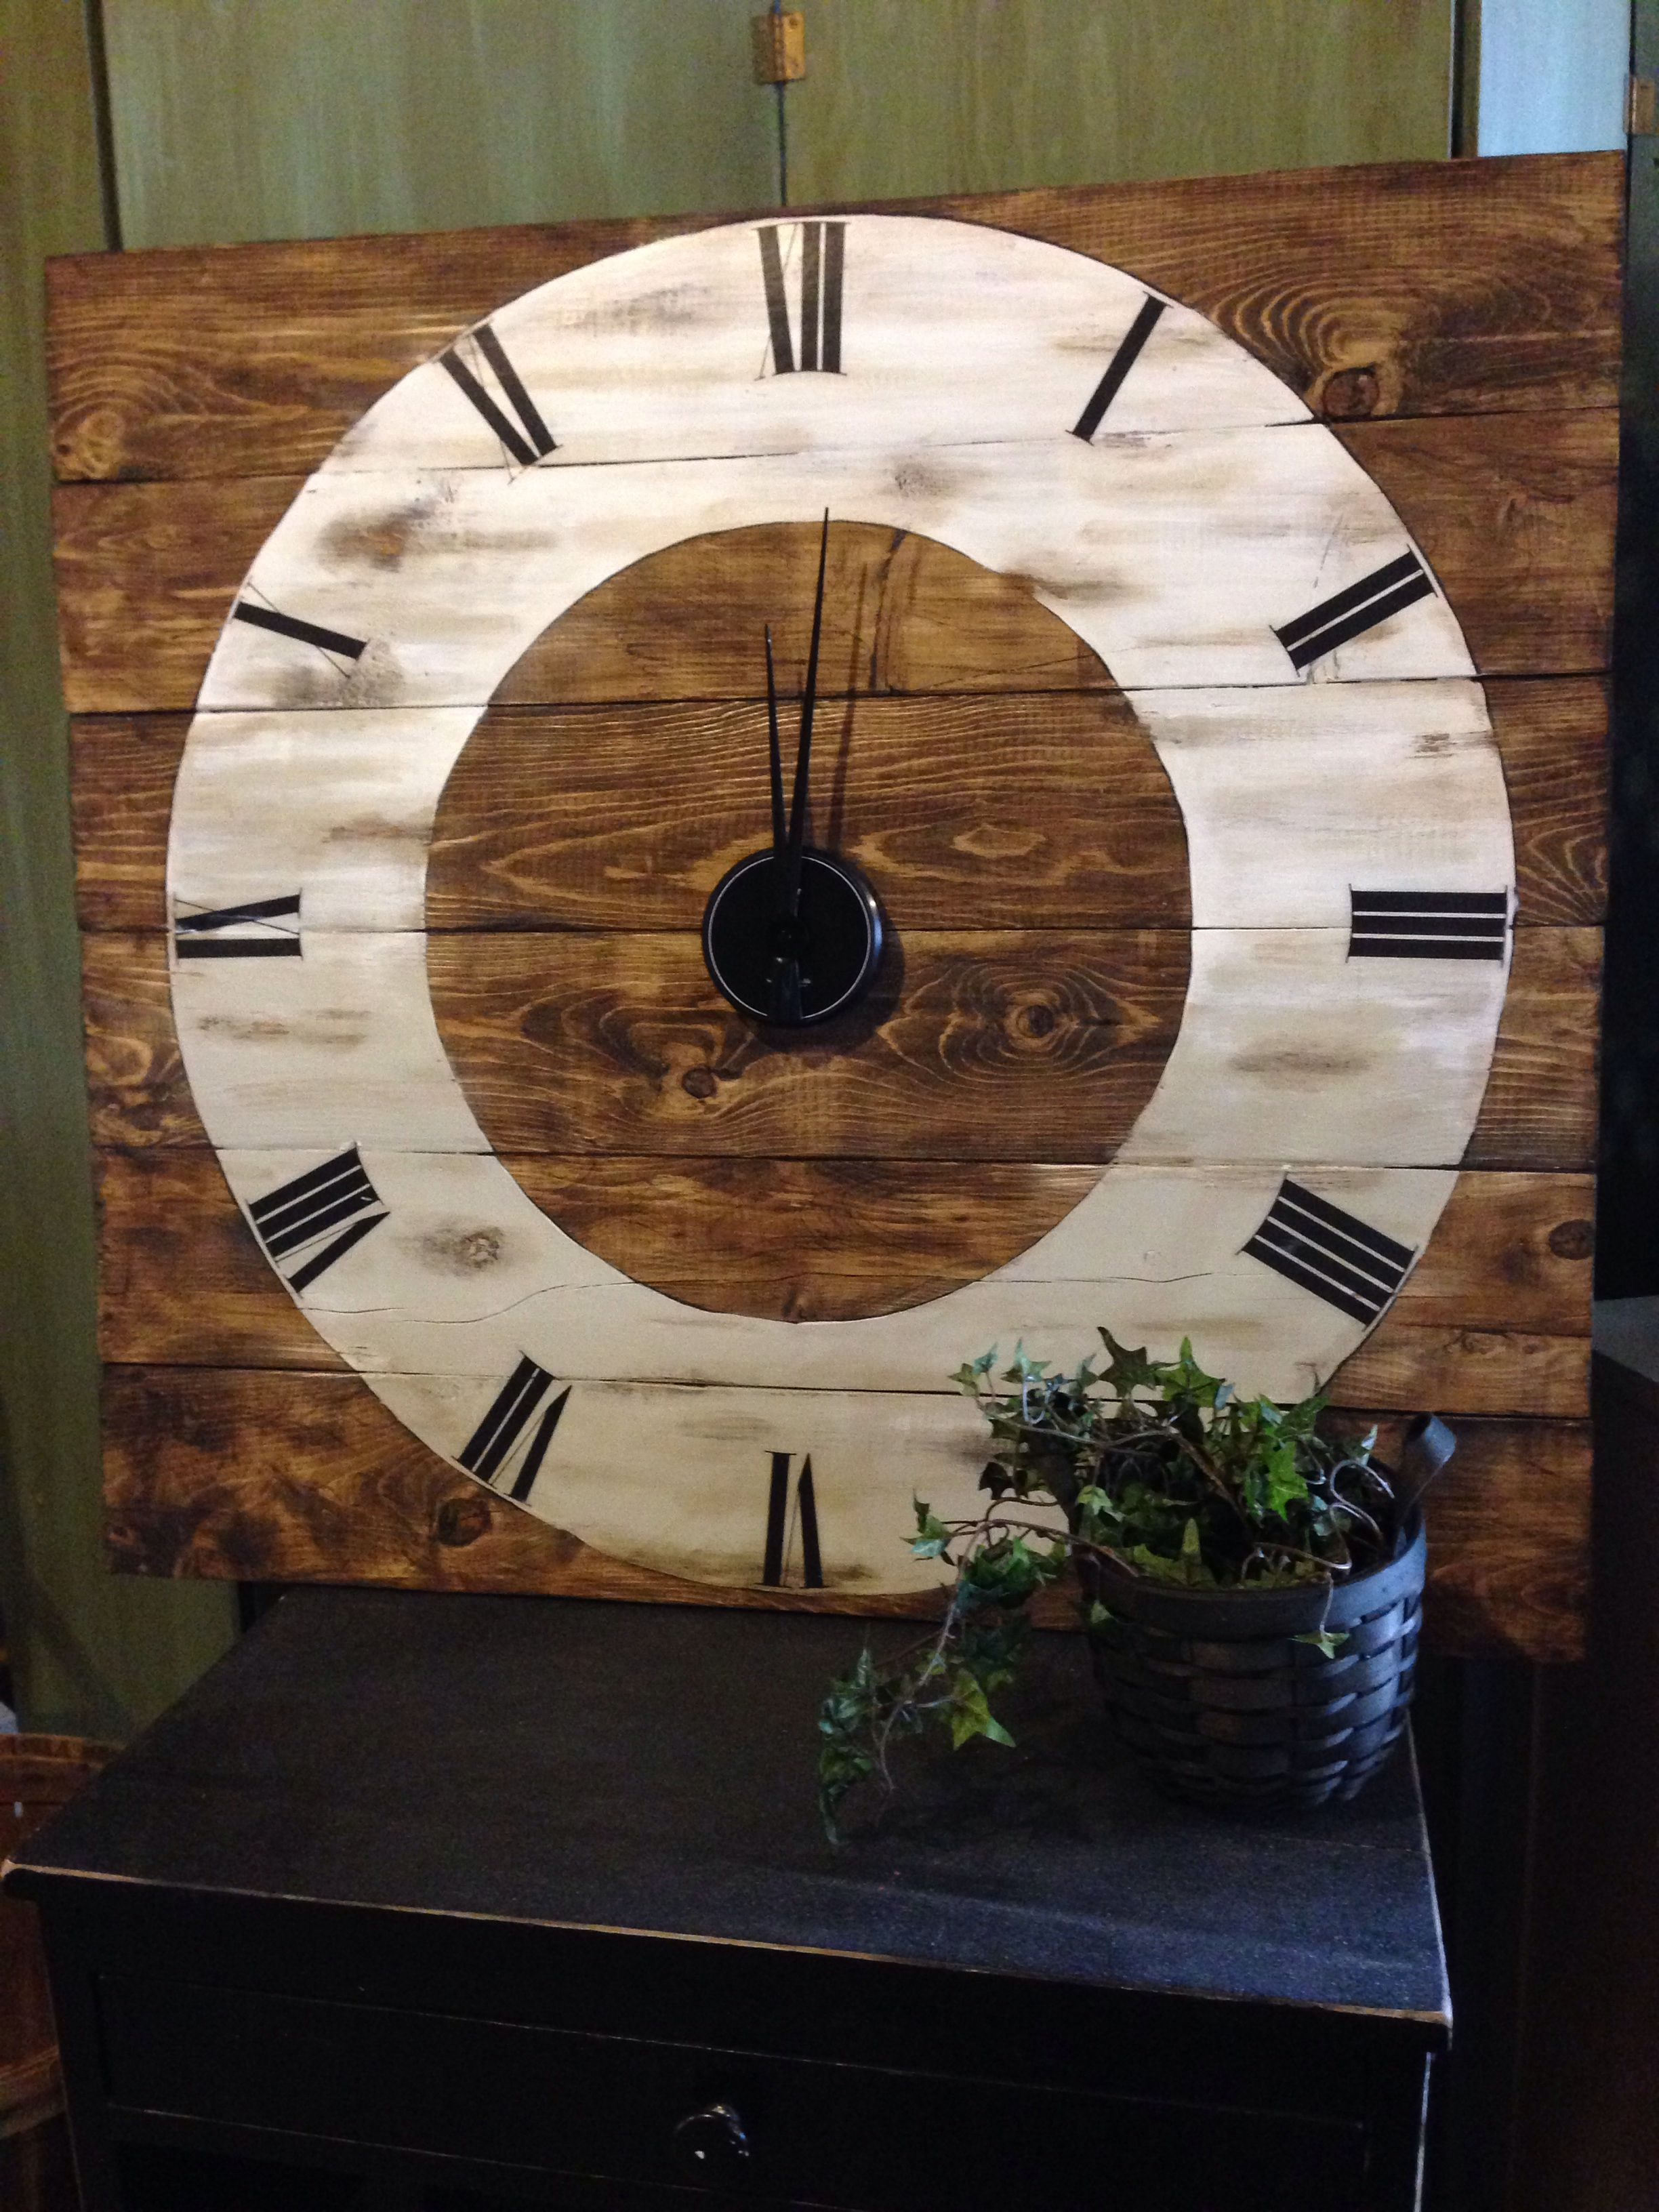 3' X 3' Wall Clock I made from pallet wood, walnut stain ...